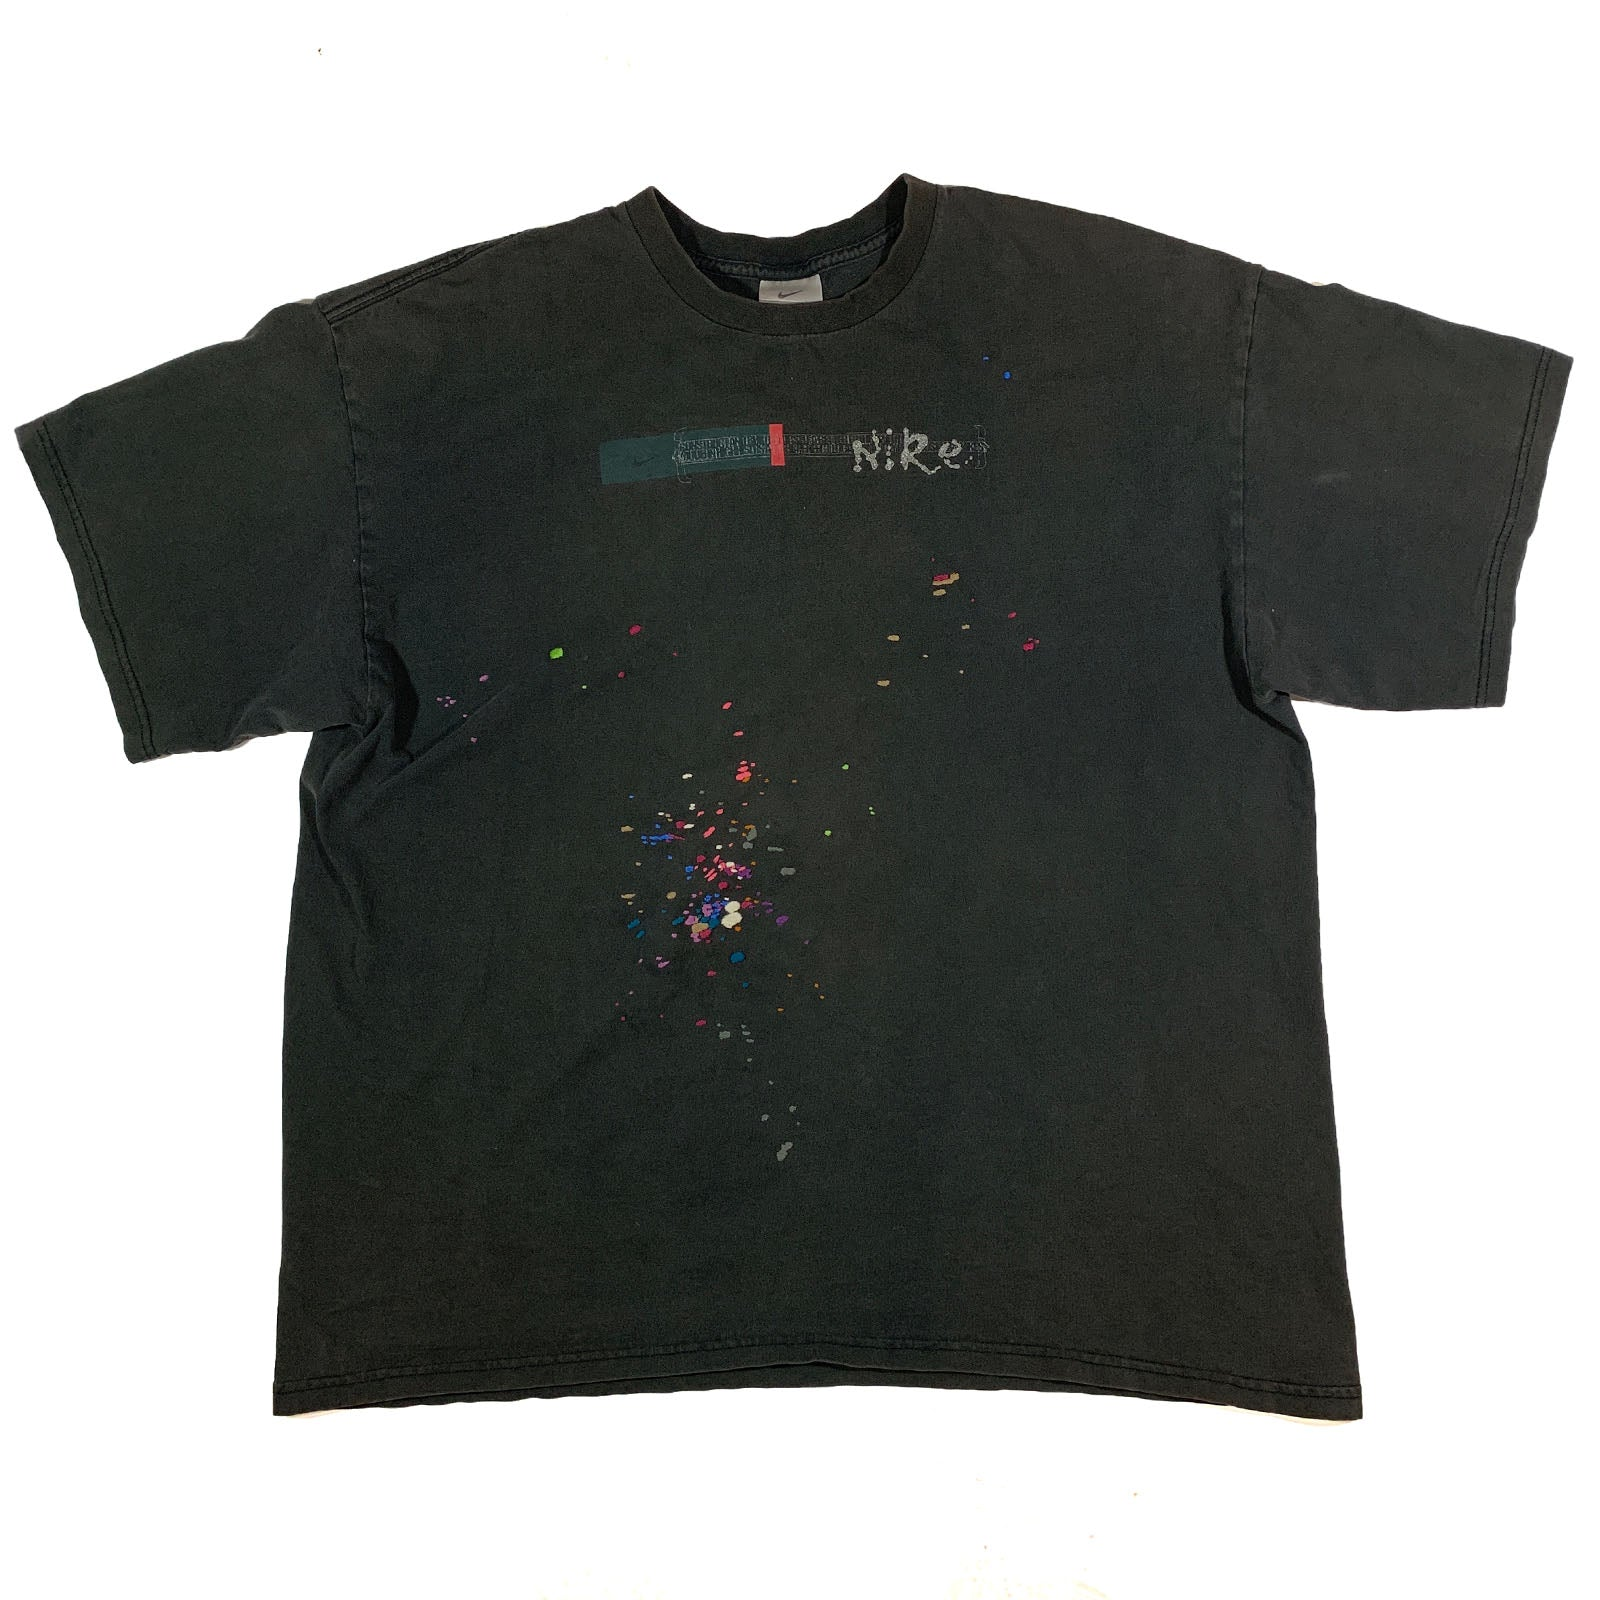 "BANDULU "" CHROME TEARS "" VINTAGE NIKE TEE XL"